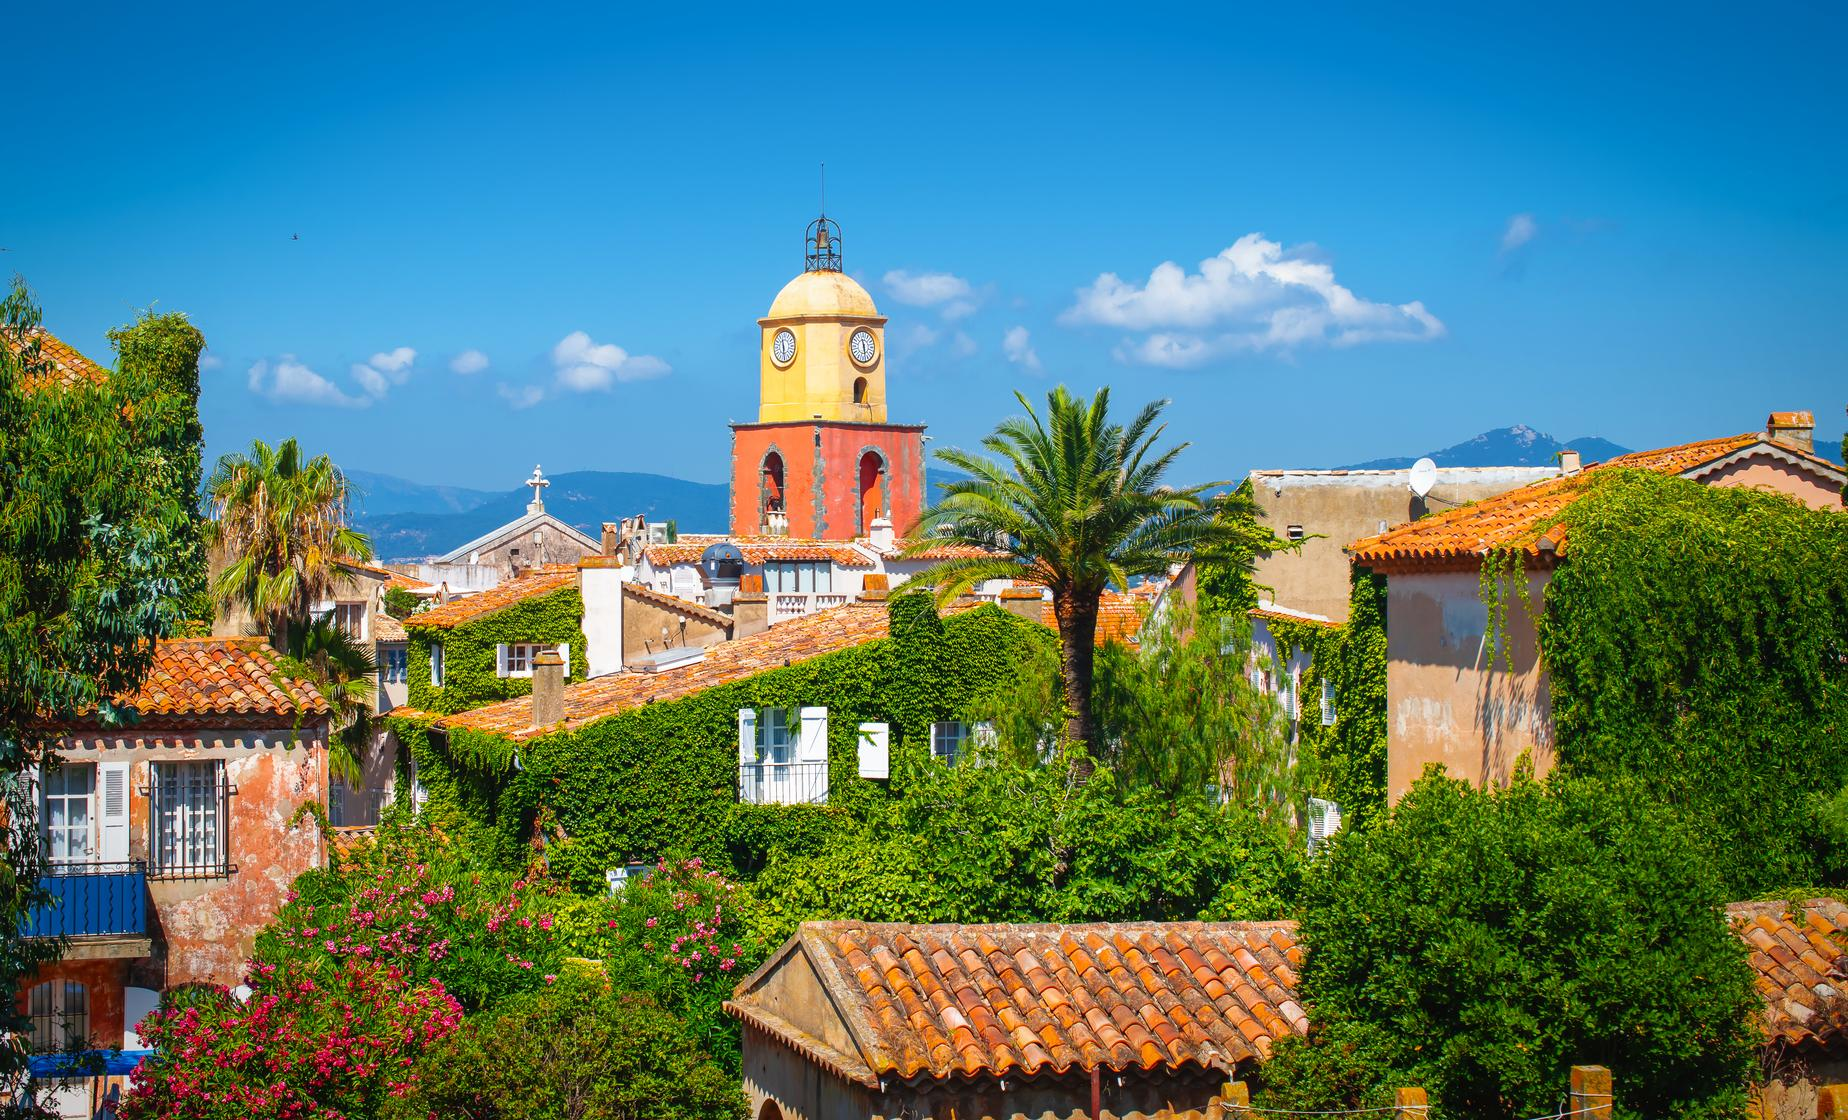 Saint Tropez and Port Grimaud